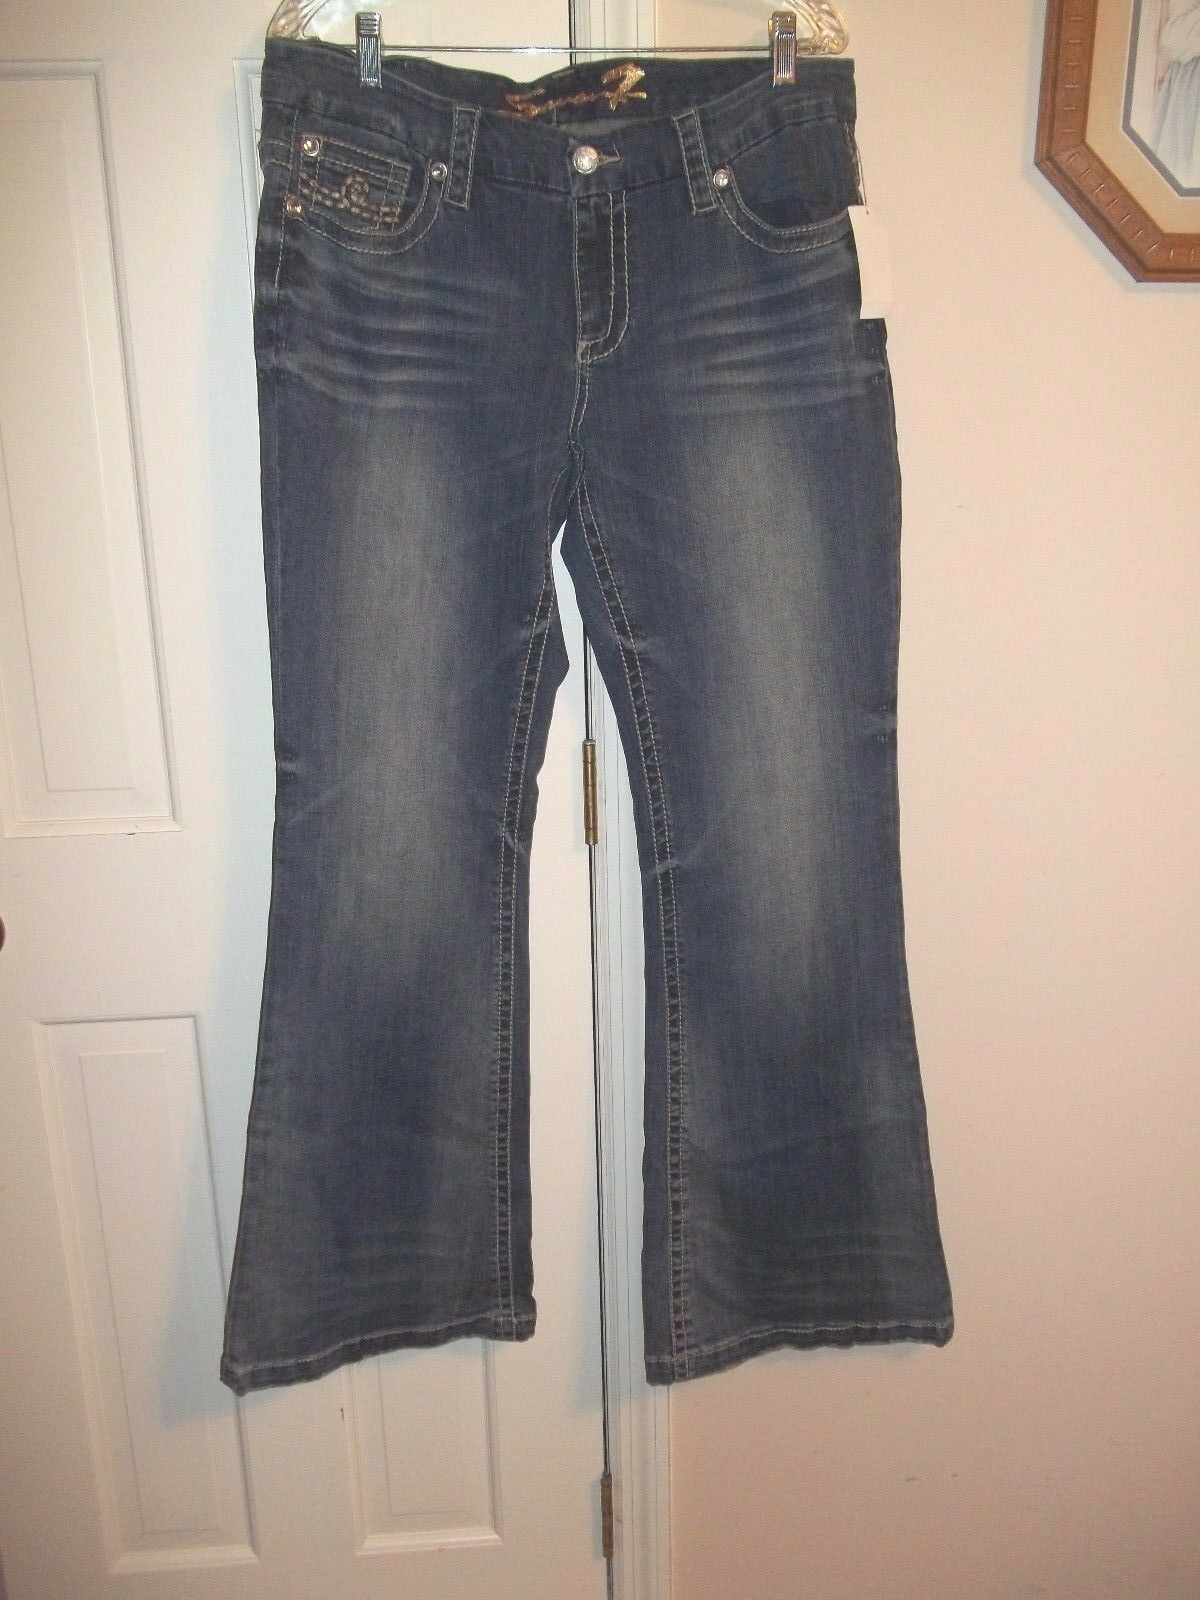 SEVEN 7 LADIES SIZE 16 DENIM JEANS blueE JEAN PANTS NWT FLARE LEGS FLAT FRONT